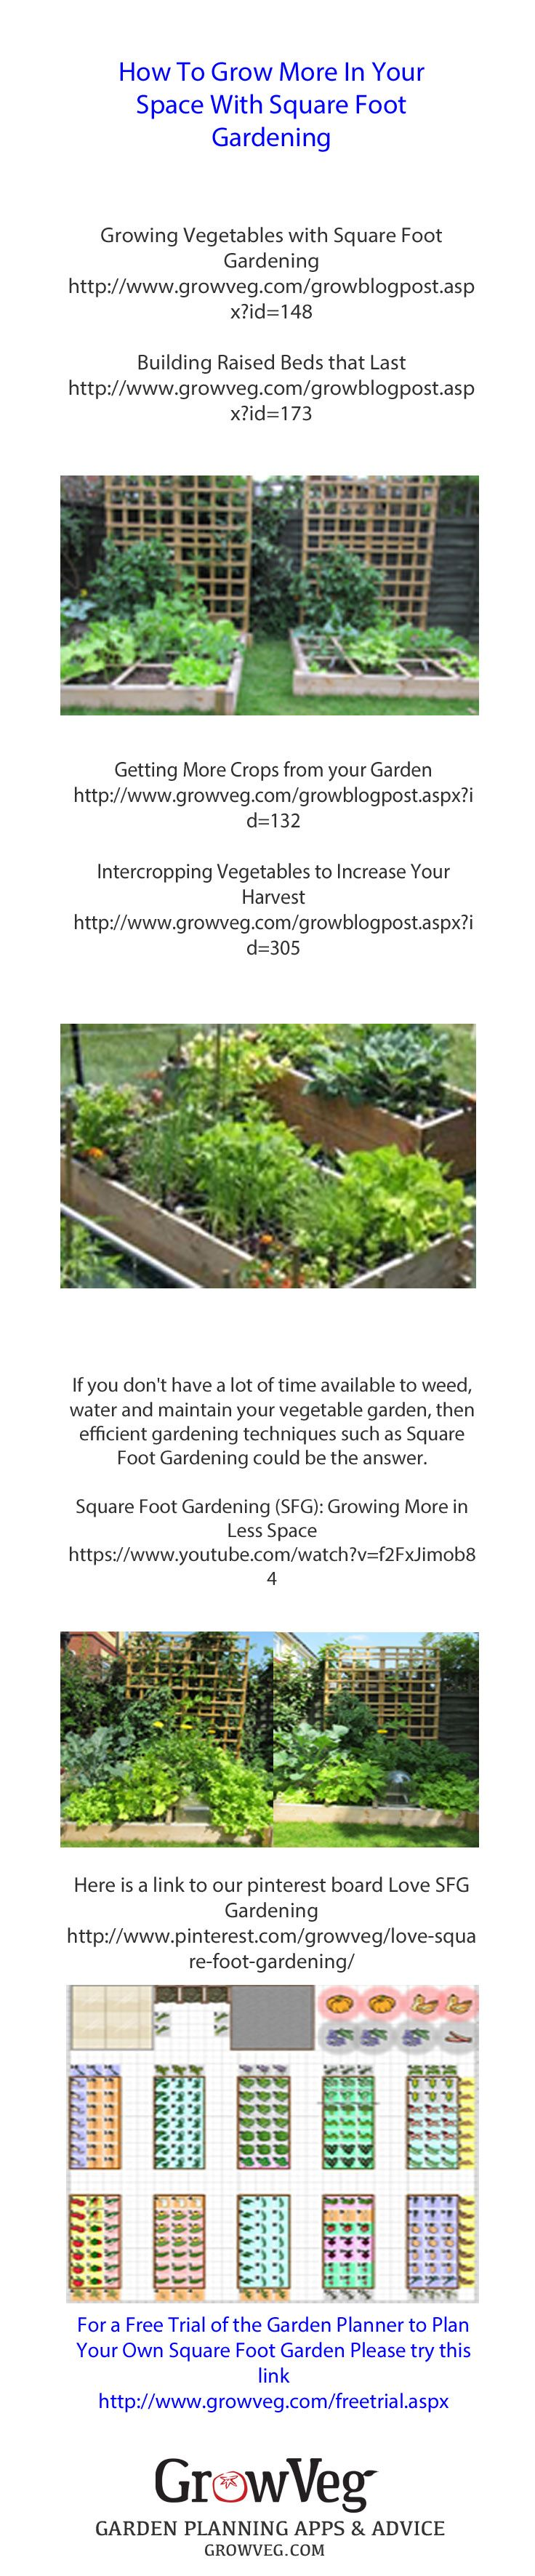 Square foot gardening combines a special nutrient rich potting  compost blend, companion planting principles and a good deal of planning for which the Garden Planner  from growveg.com is ideal. The result is that you can grow very much more produce in the raised beds than is usual. This is a great way to garden if you only have a small area, or a little time to raise a few really fresh vegetables, herbs and flowers.